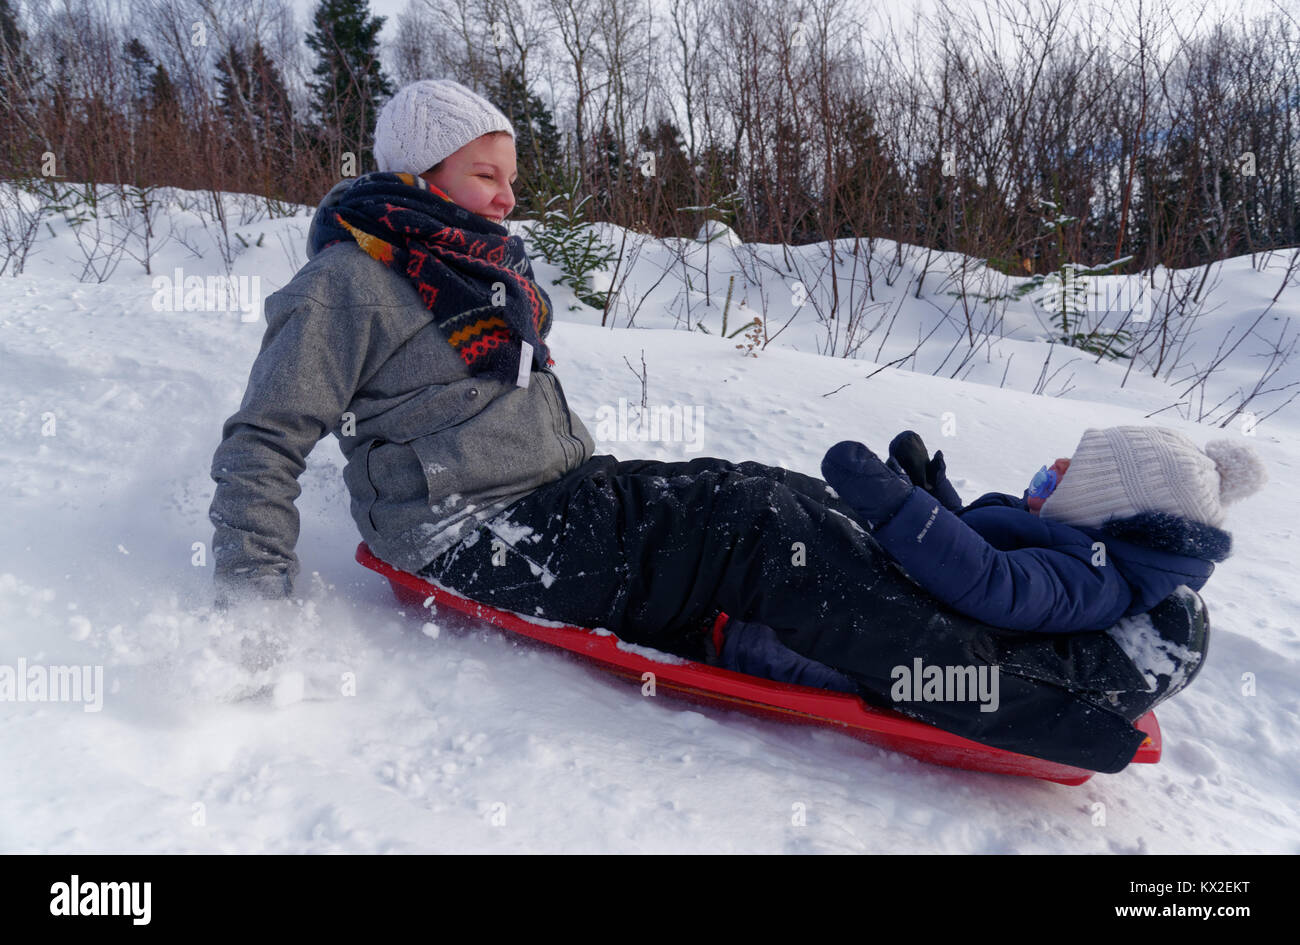 A smiling young mother sledging with her infant (1 yr old) daughter - Stock Image